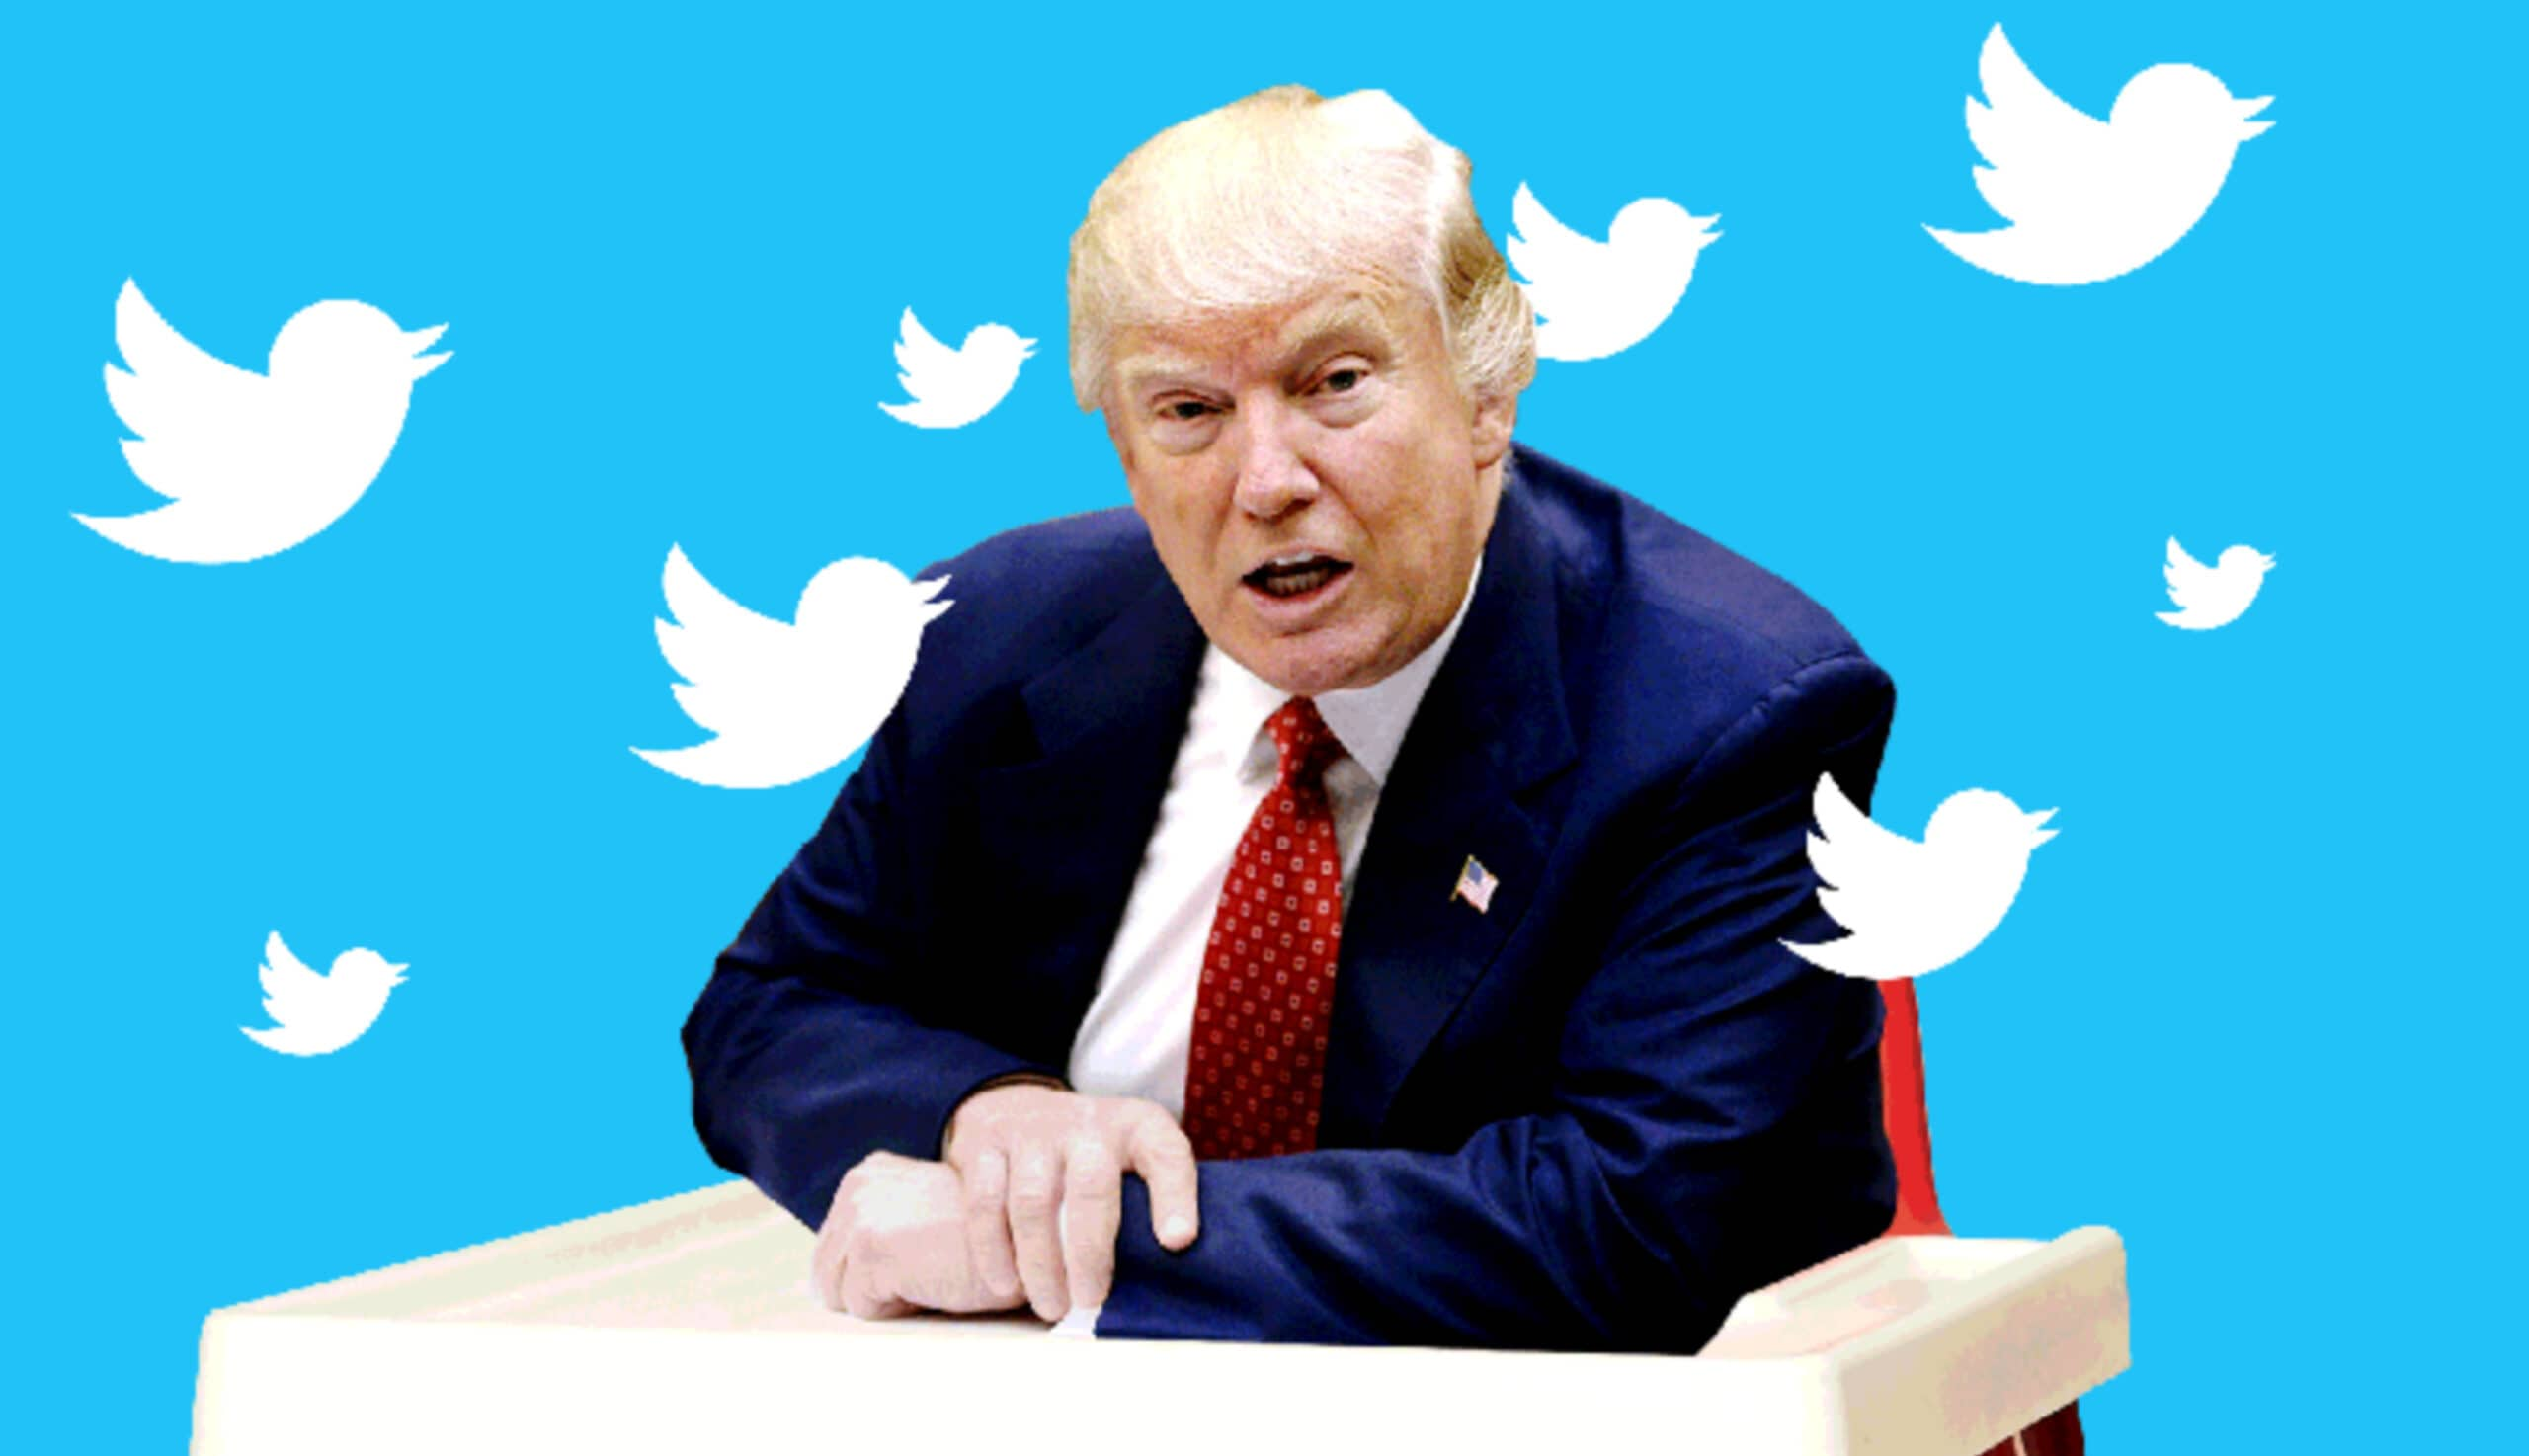 Donald Trump surrounded by twitter symbols